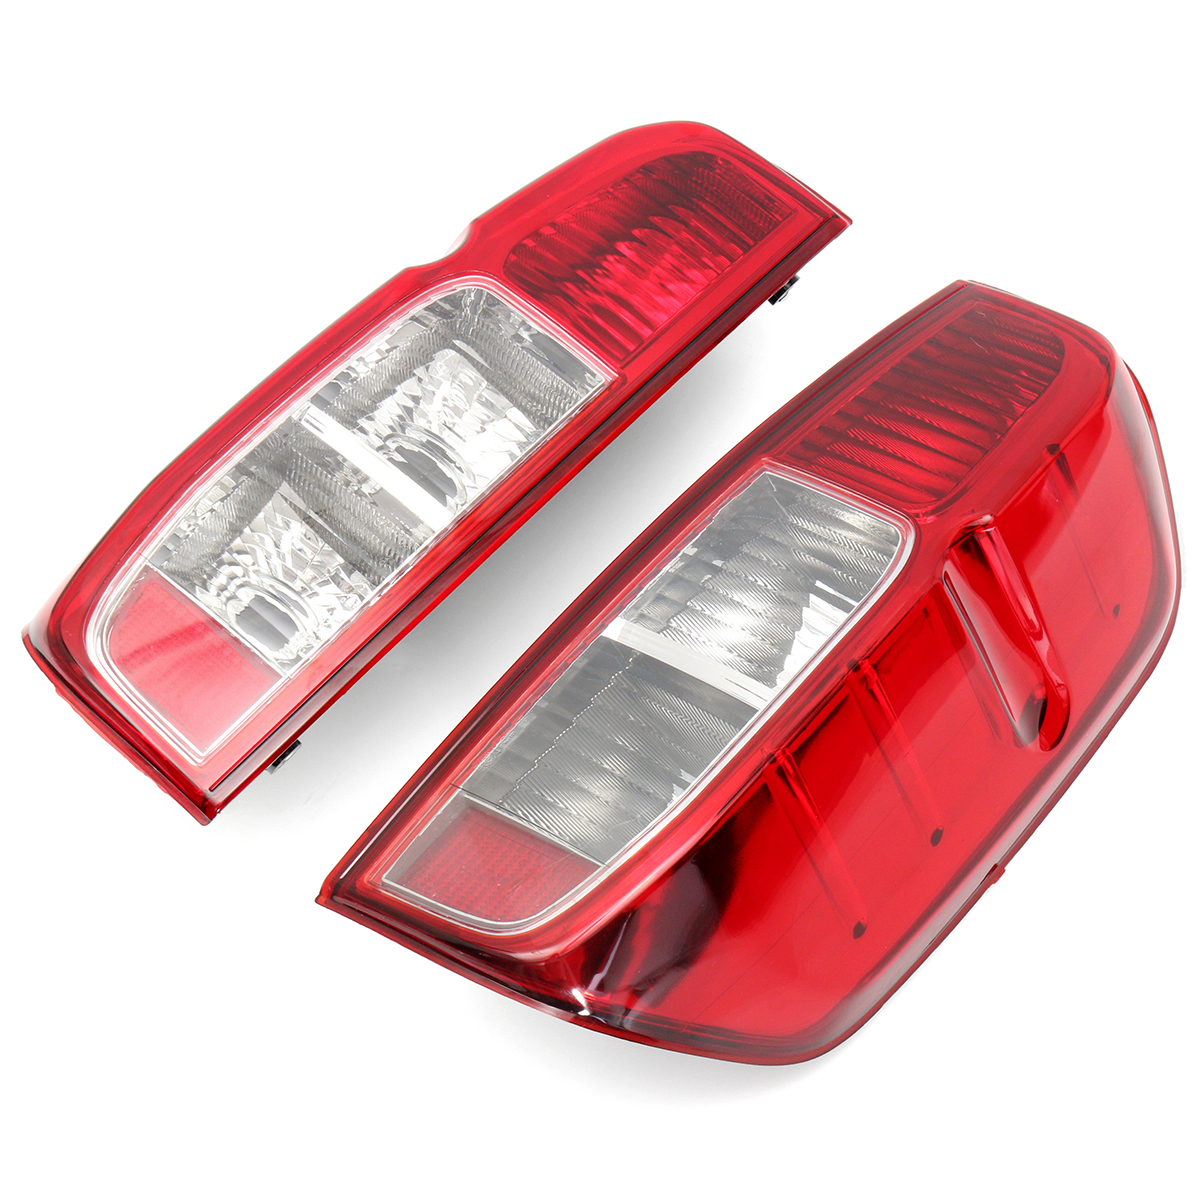 2Pcs LEFT/RIGHT Rear Tail Light Driver Passenger Side Lamp For Nissan NAVARA D40 2005-2015 abs sensor for nissan navara d40 pathfinder r51 2005 onwards front left right replacement parts 47910 ea025